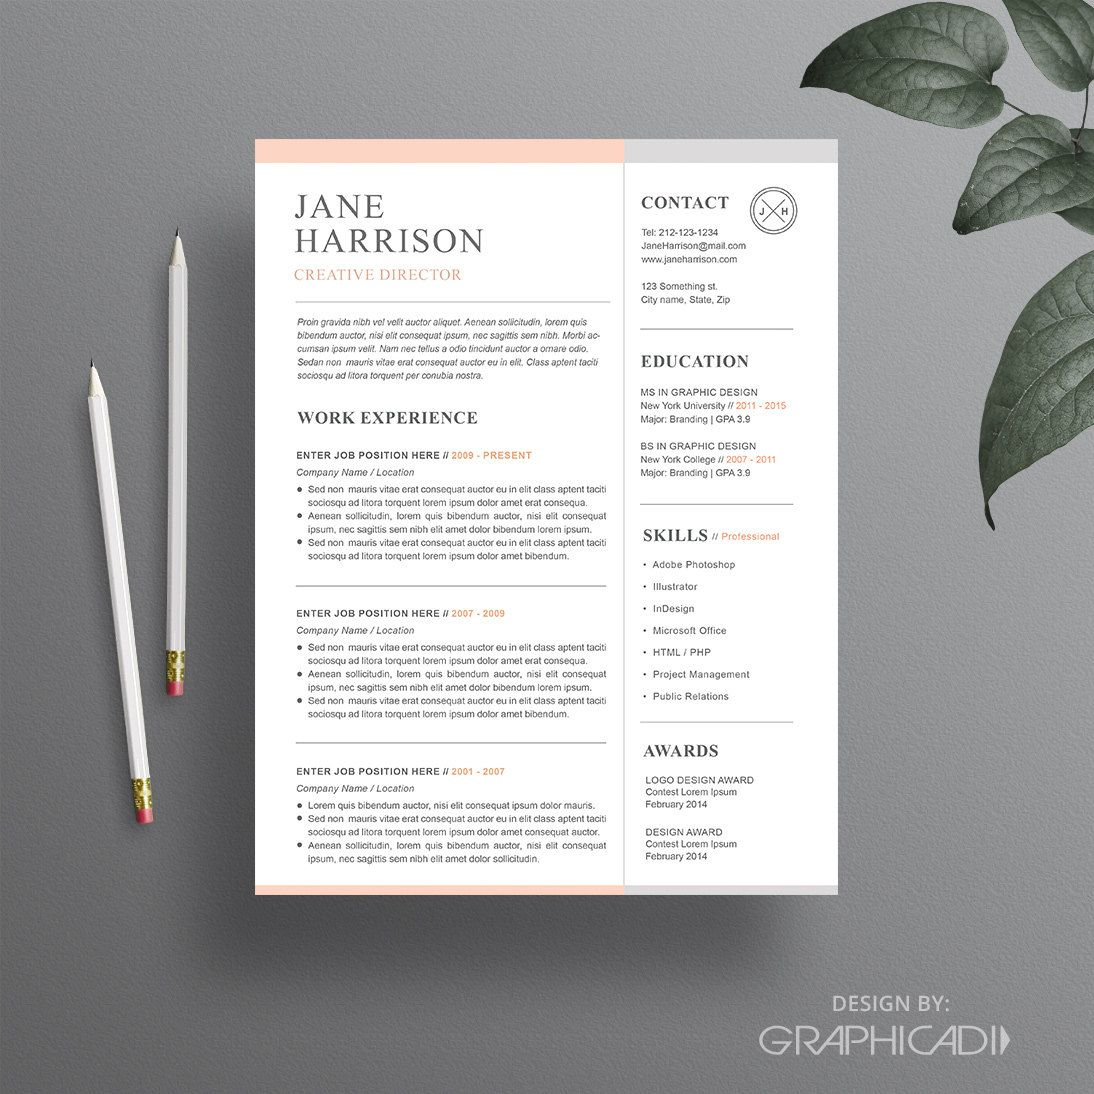 CV template with matching cover letter and reference page | Best ...